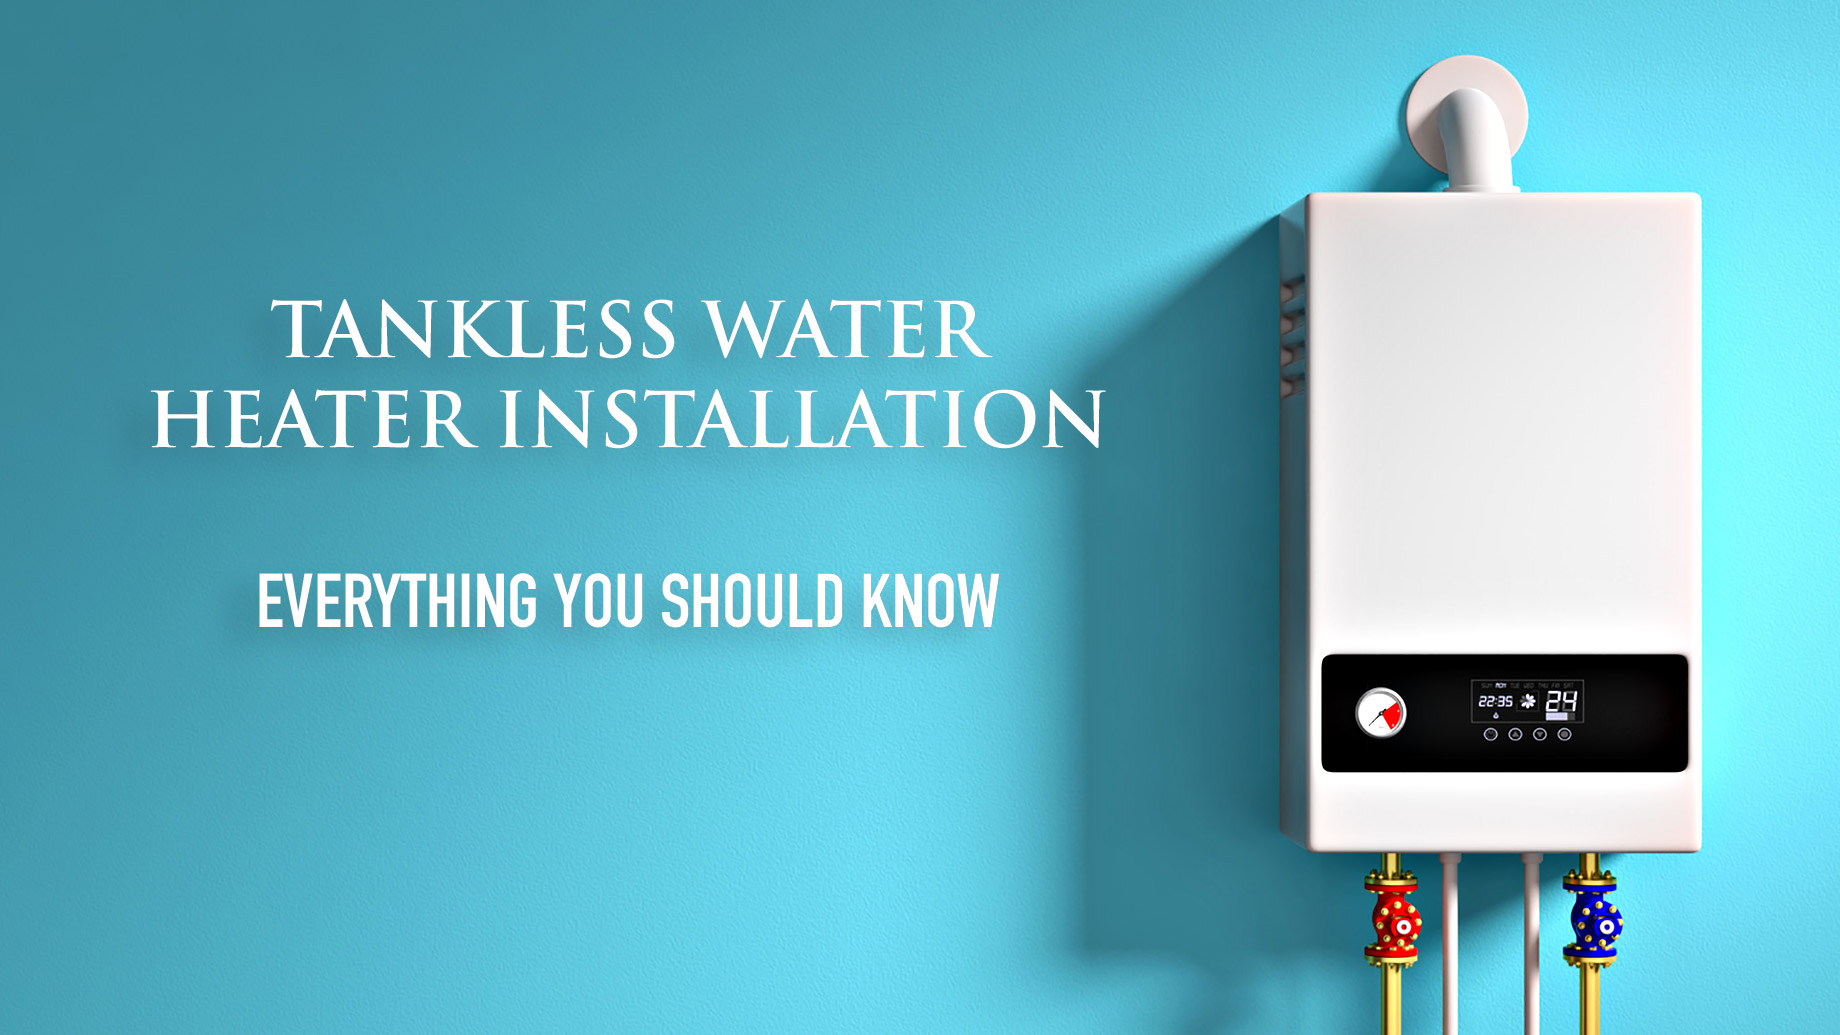 Tankless Water Heater Installation - Everything You Should Know